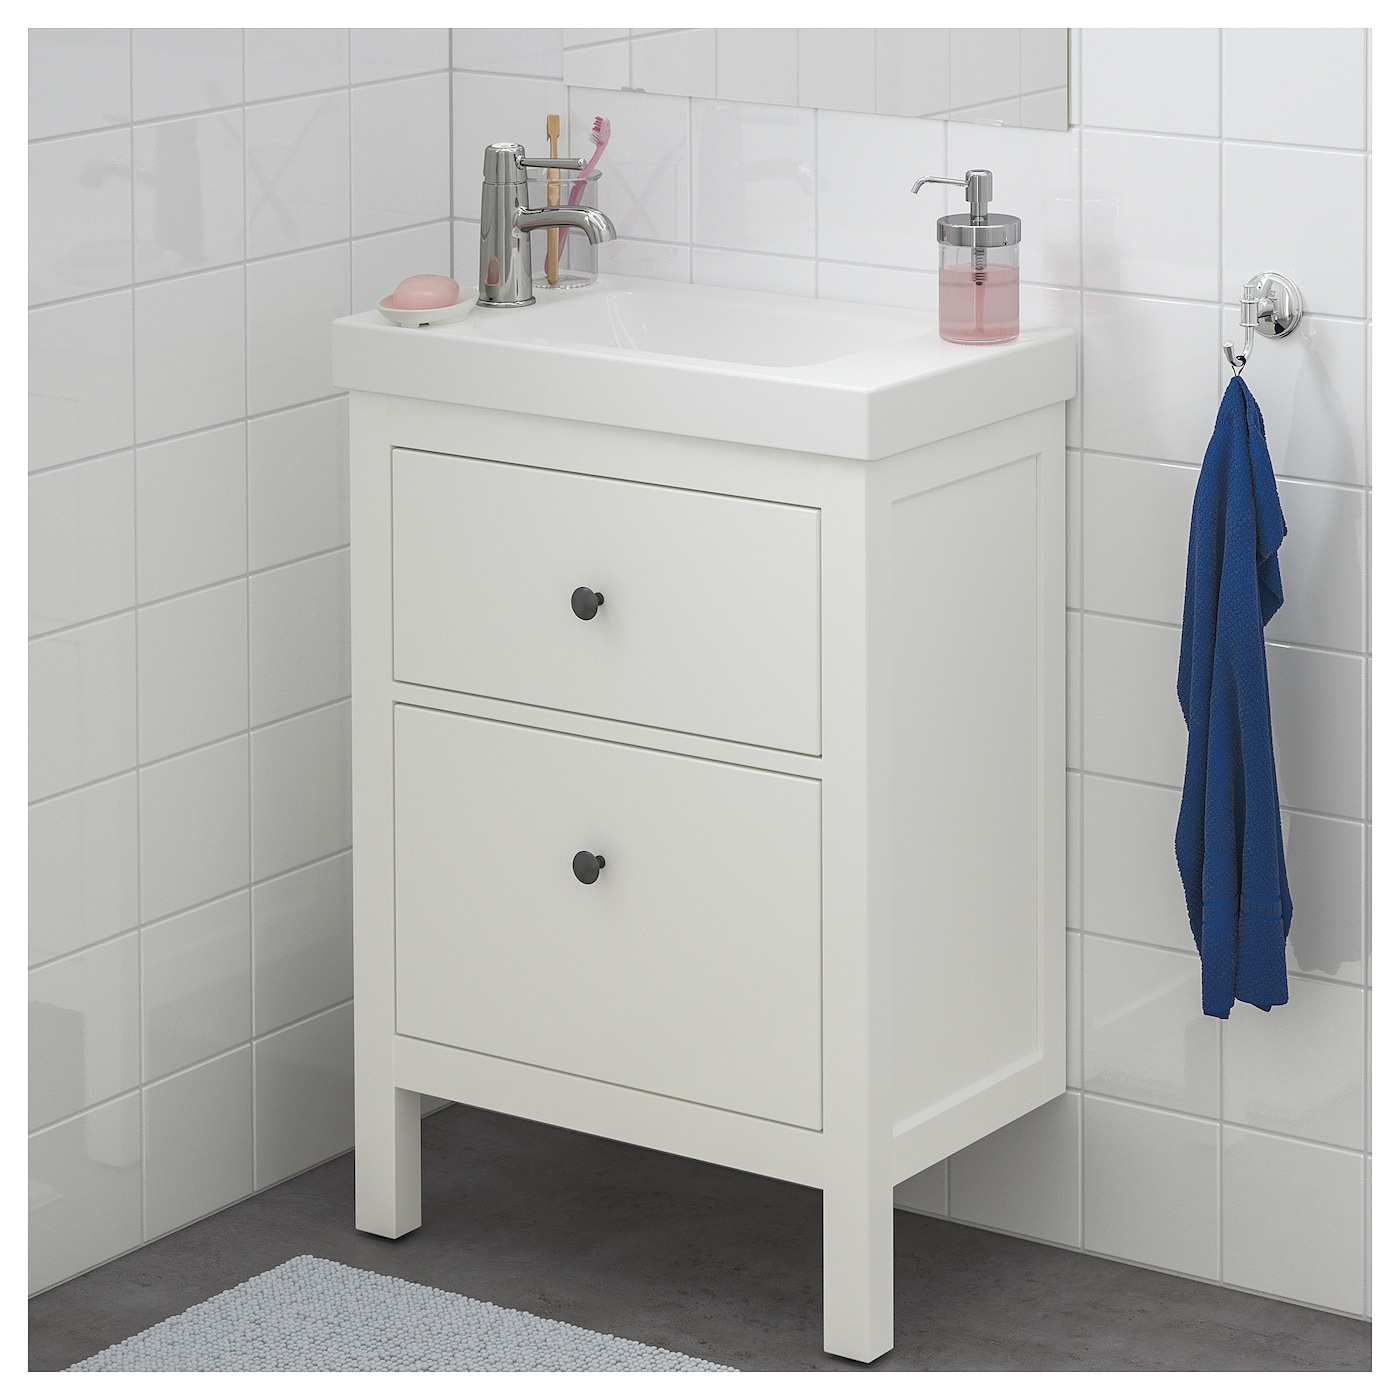 hemnes hagaviken meuble lavabo 2tir blanc 63x34x90 cm ikea. Black Bedroom Furniture Sets. Home Design Ideas